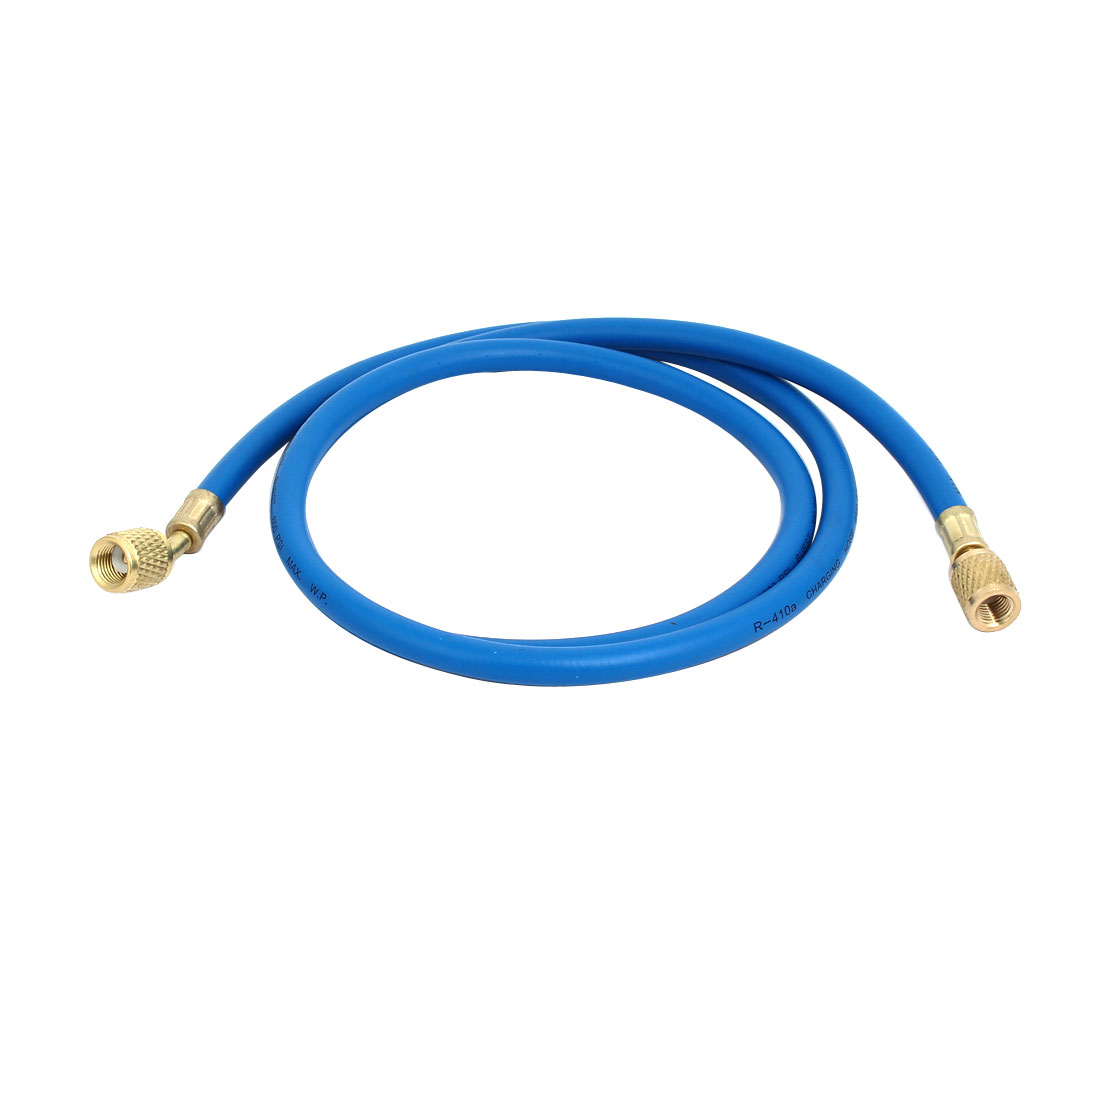 1.36M 1/4NPT to M12 Refrigeration Charging Hose Blue for AC Refrigerant R410